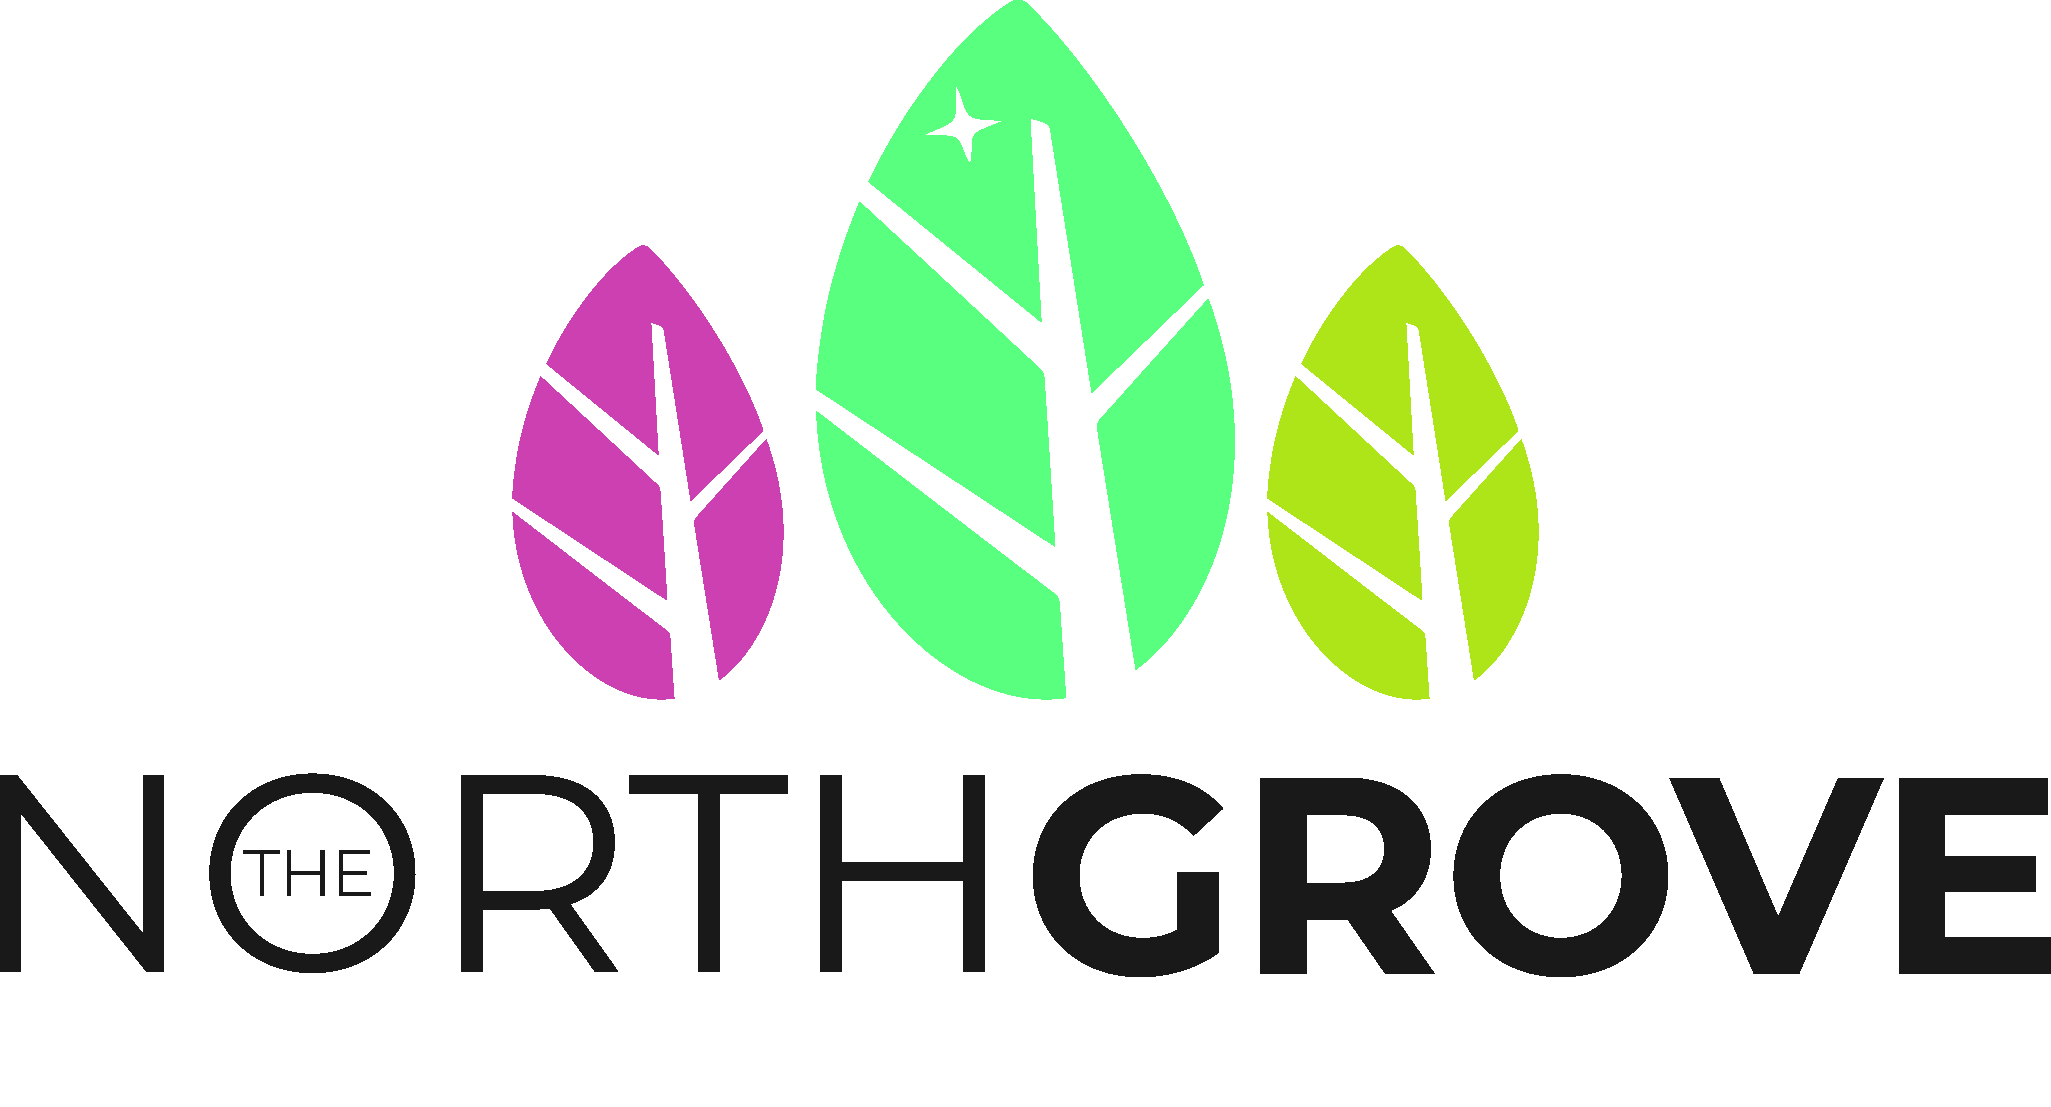 The North Grove logo